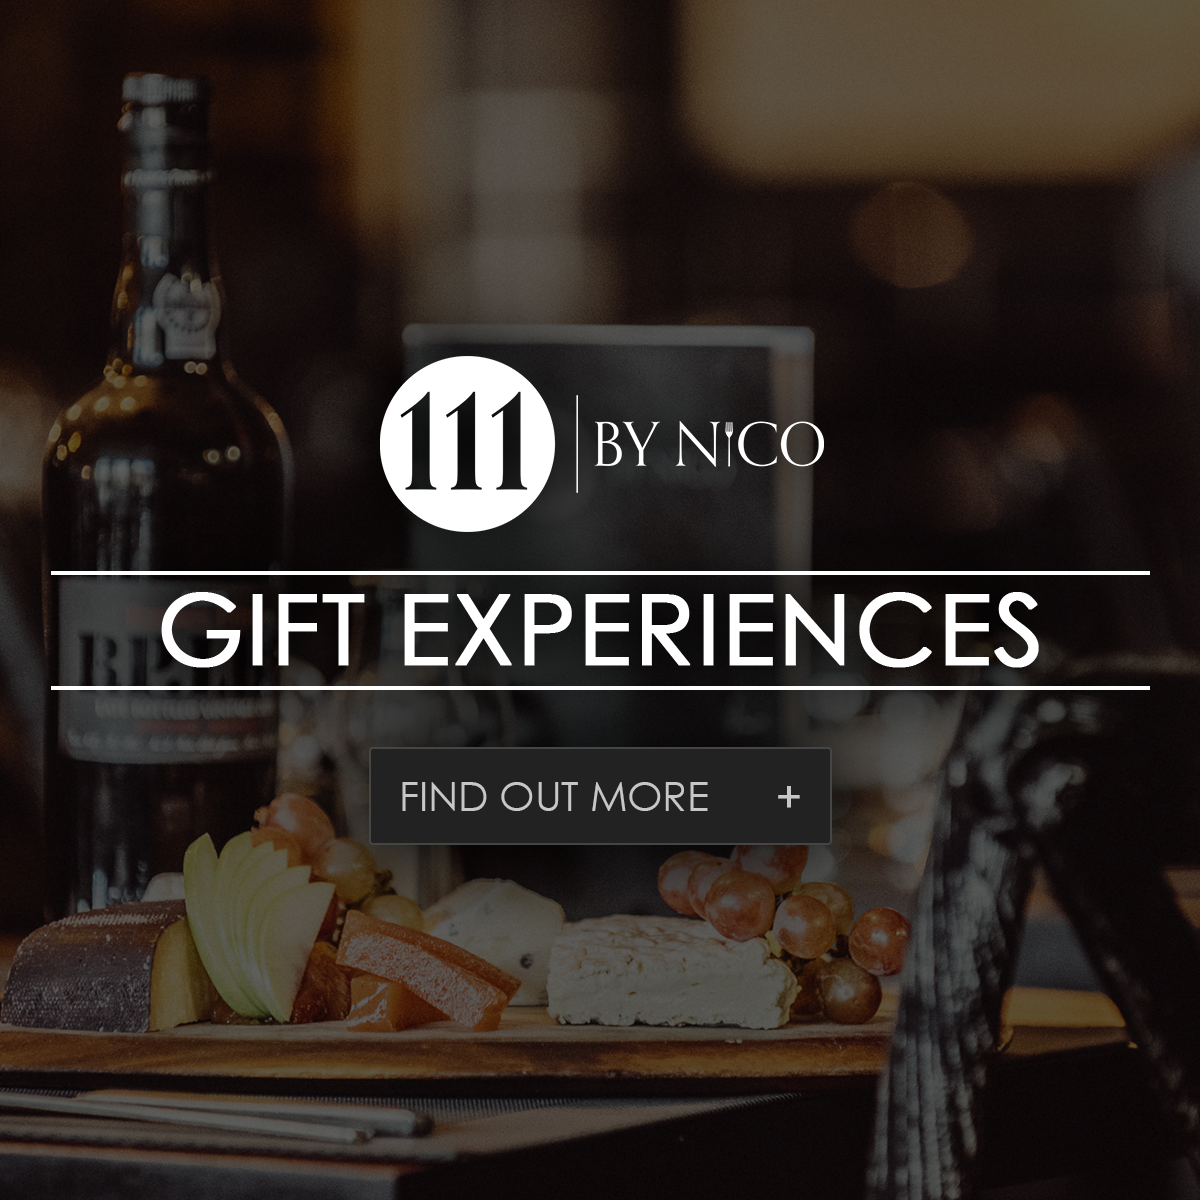 gift experiences at 111 by nico